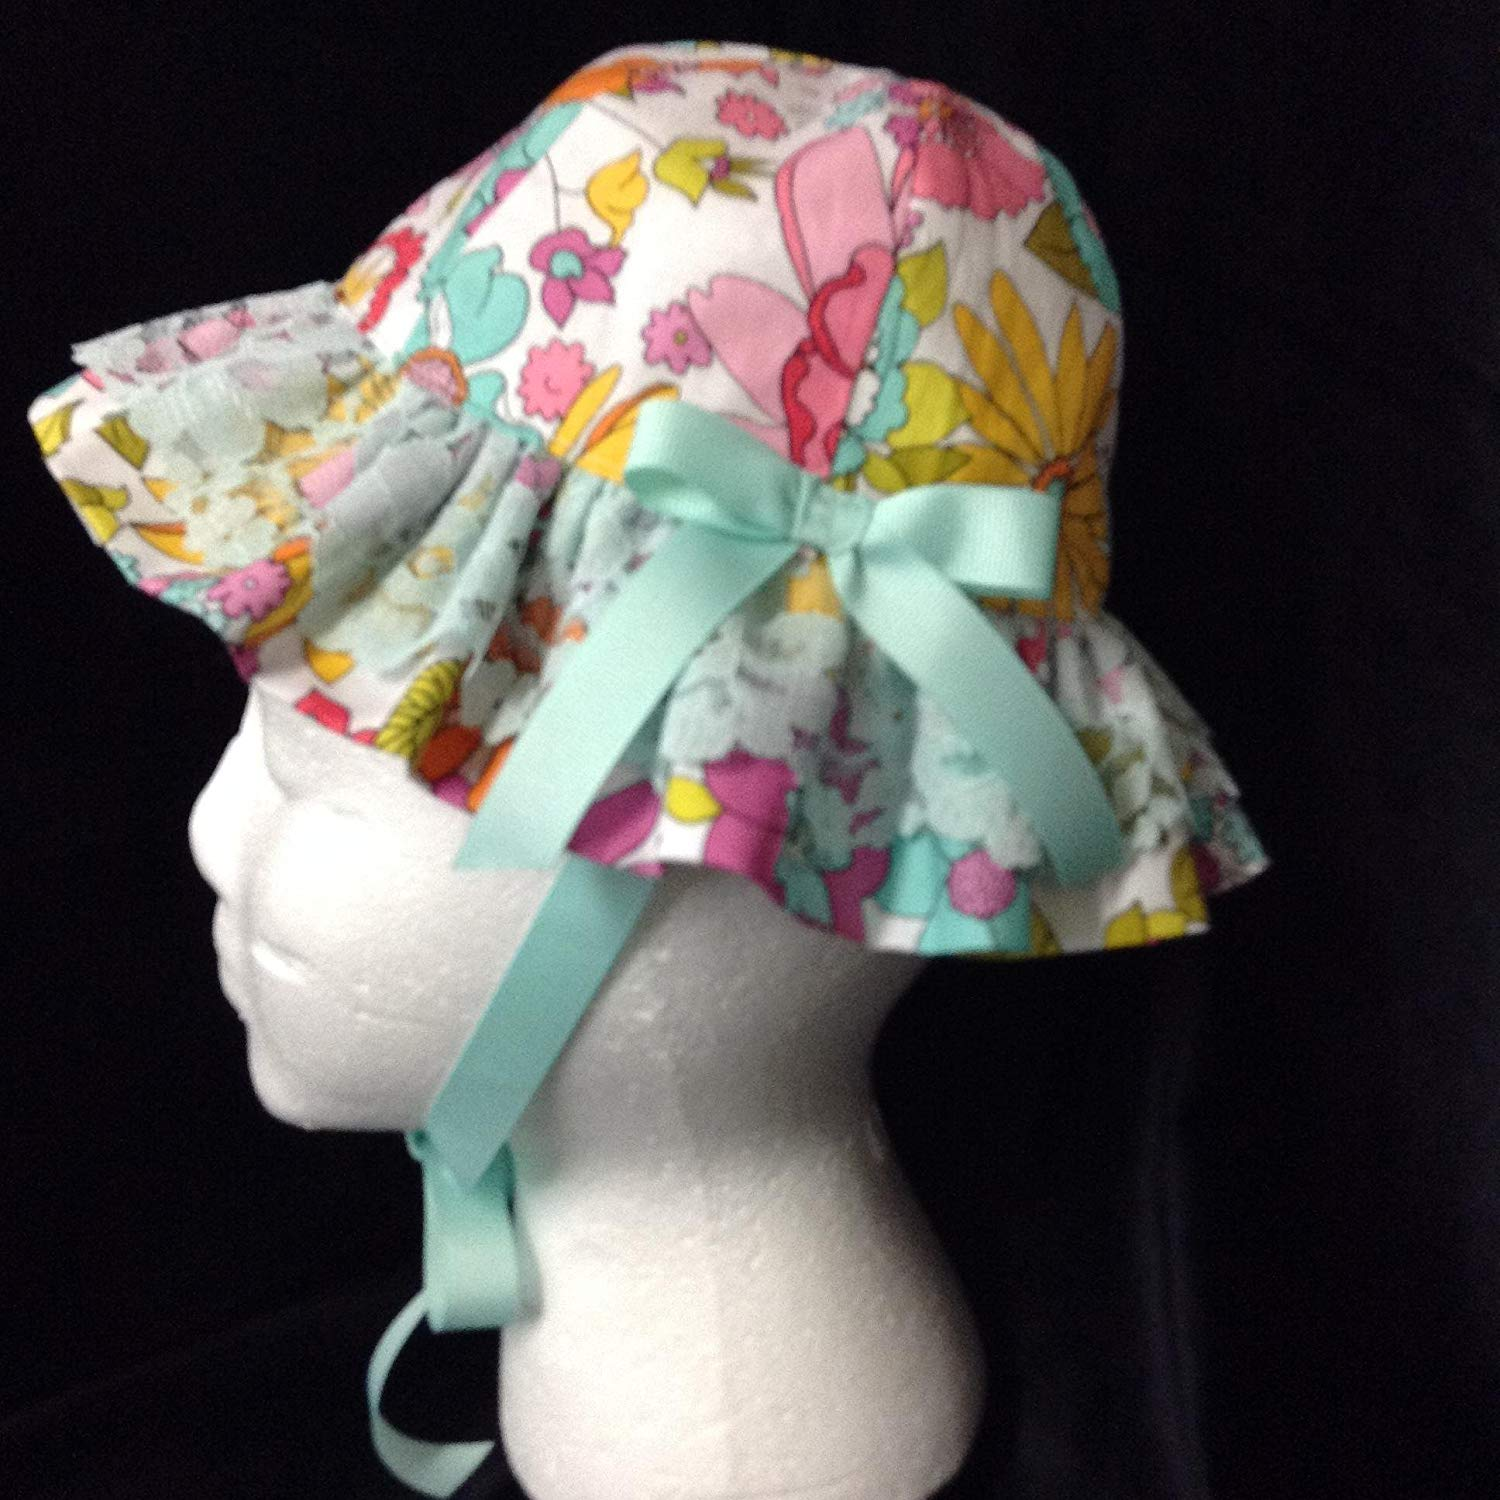 d7cf0eaa455f5 Get Quotations · Floral Toddler Baby Girl SUNHAT 6-12 Months